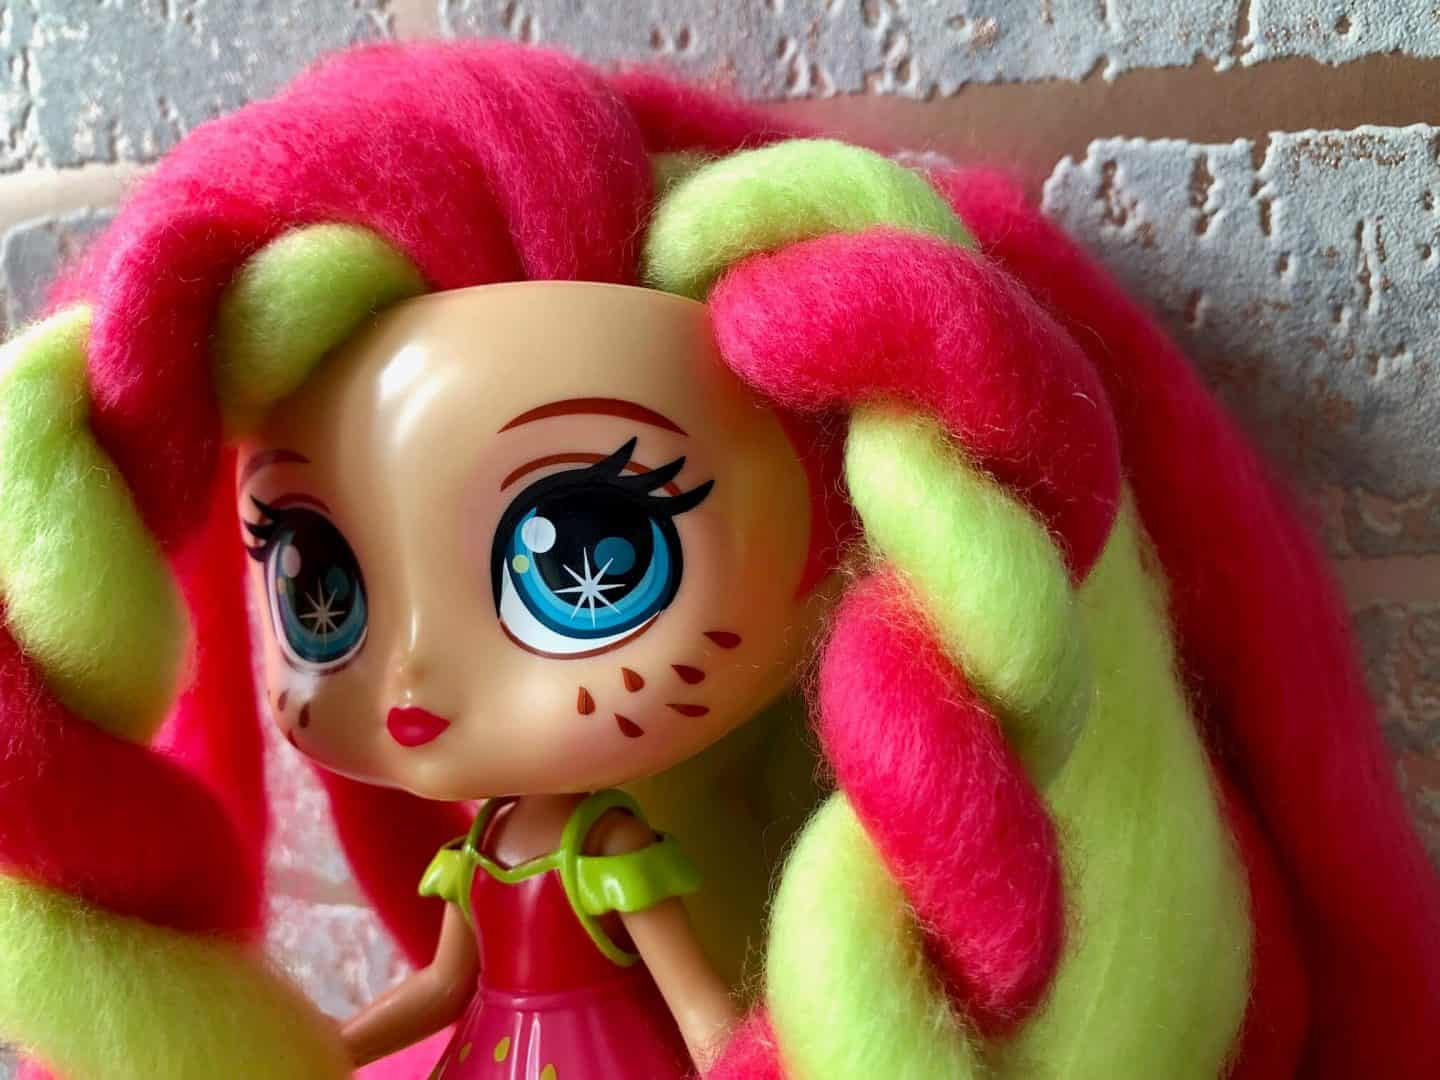 Candylocks Dolls - Straw Mary red and green hair